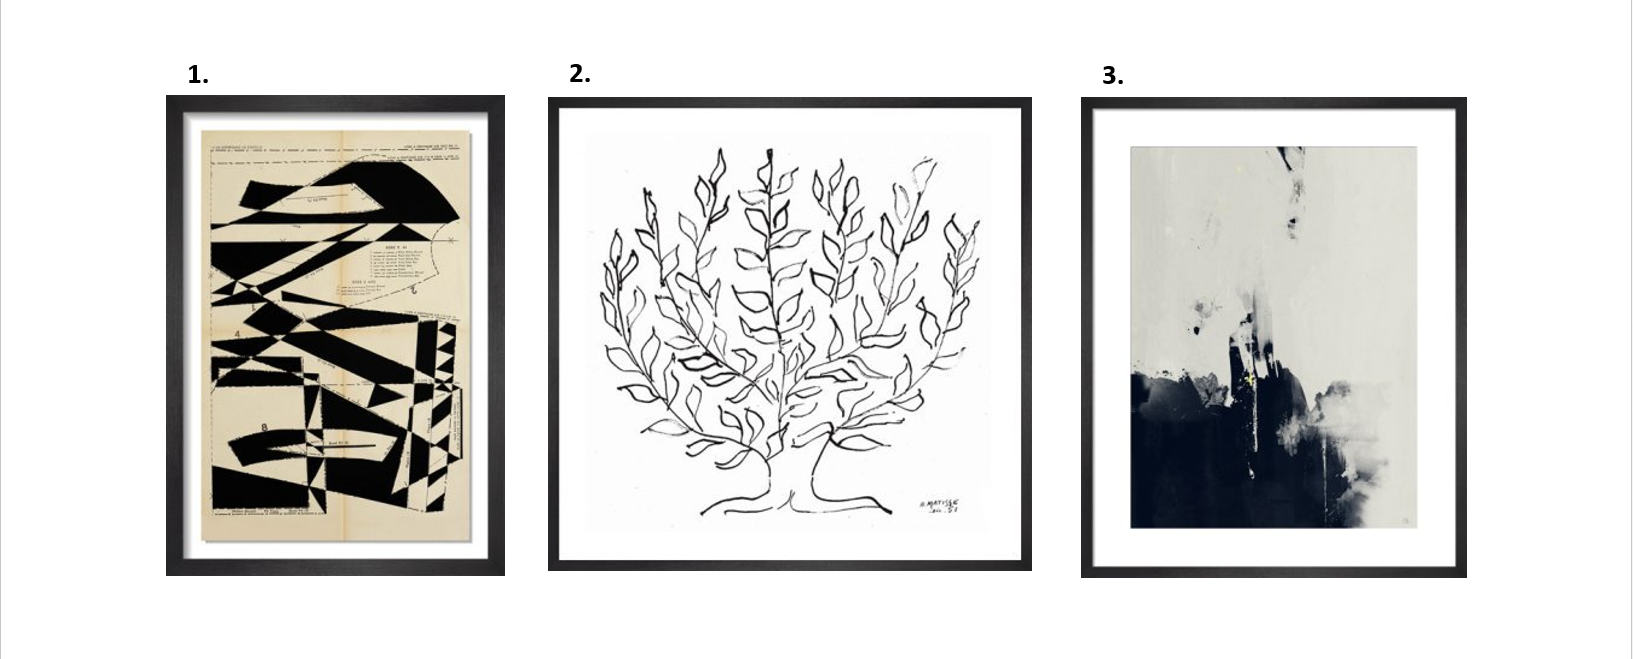 1.  Lost Gardens No.1 by Hormarzd Narielwalla   2. The Plain Tree by Matisse   3.  Into The Light by Michelle Collins